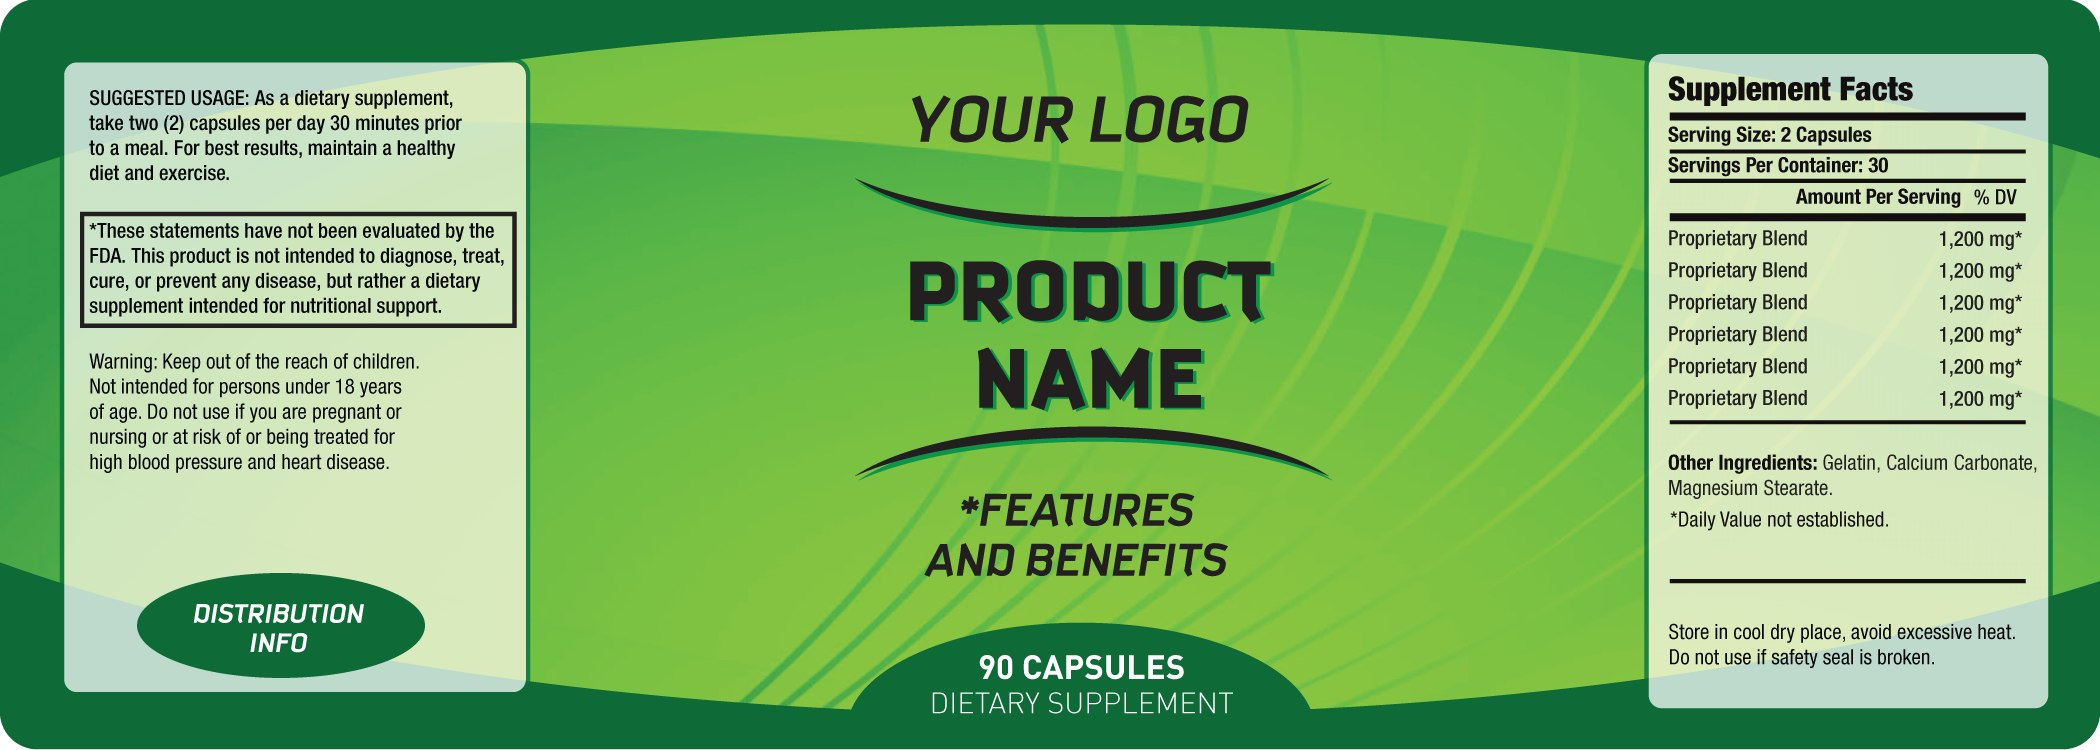 Bottle Labels Templates  Template Business Pertaining To Product Label Design Templates Free